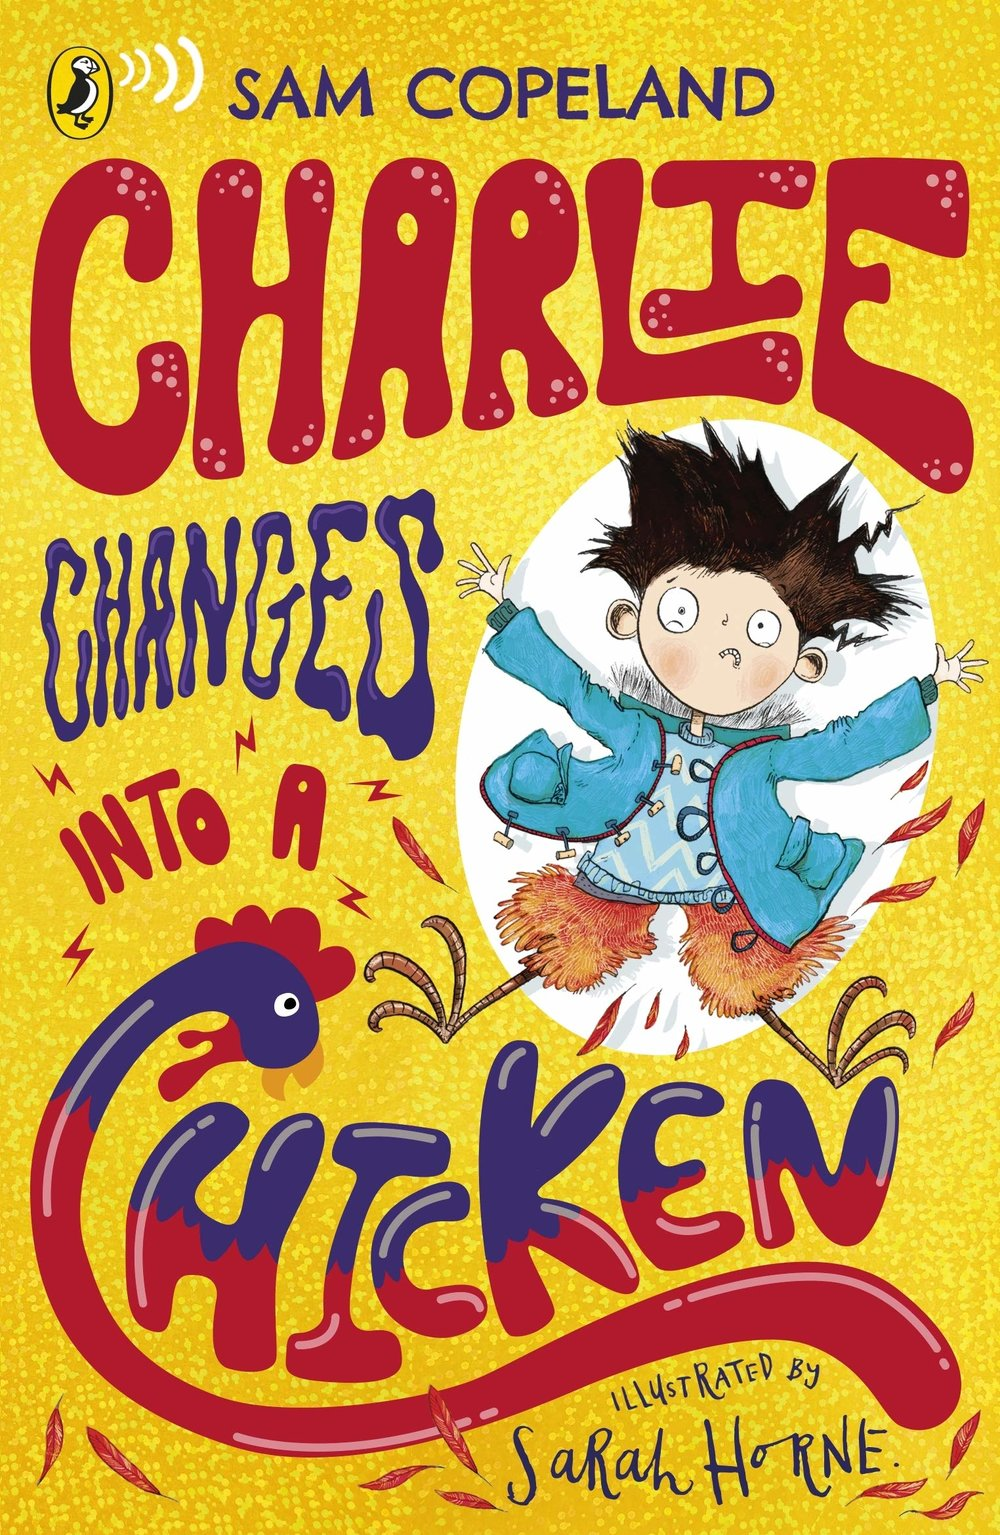 - CHARLIE CHANGES INTO A CHICKEN will be published by Puffin (and in 20 other countries!) on February 7th 2019.A sequel will be published August 2019, with a third in the series coming early 2020.So what's it about then?Charlie McGuffin tries to be an optimist, but in reality he's a bit of a worrier.Some of the things Charlie is worried about:· His brother (who is in hospital)· Their very panicked parents· Unwanted attention from the school bully· The fact that he's started turning into animals!Even though every kid wants a superhero power, Charlie isn't keen on turning into a pigeon in the middle of the school play.But what happens if he does? Will he get sent away for Science to deal with? Will his parents crack under the extra stress?With the help of his three best friends, Charlie needs to find a way of dealing with his crazy new power - and fast!Sounds great, huh? Well why not click the 'Where To Buy' tab above? There's no reason why not. Unless your mouse has just broken. In that very particular unfortunate set of circumstances, go to your nearest mouse-purveyor and buy a mouse, and when you get back then click the 'Where to buy' tab. You really have no excuse.